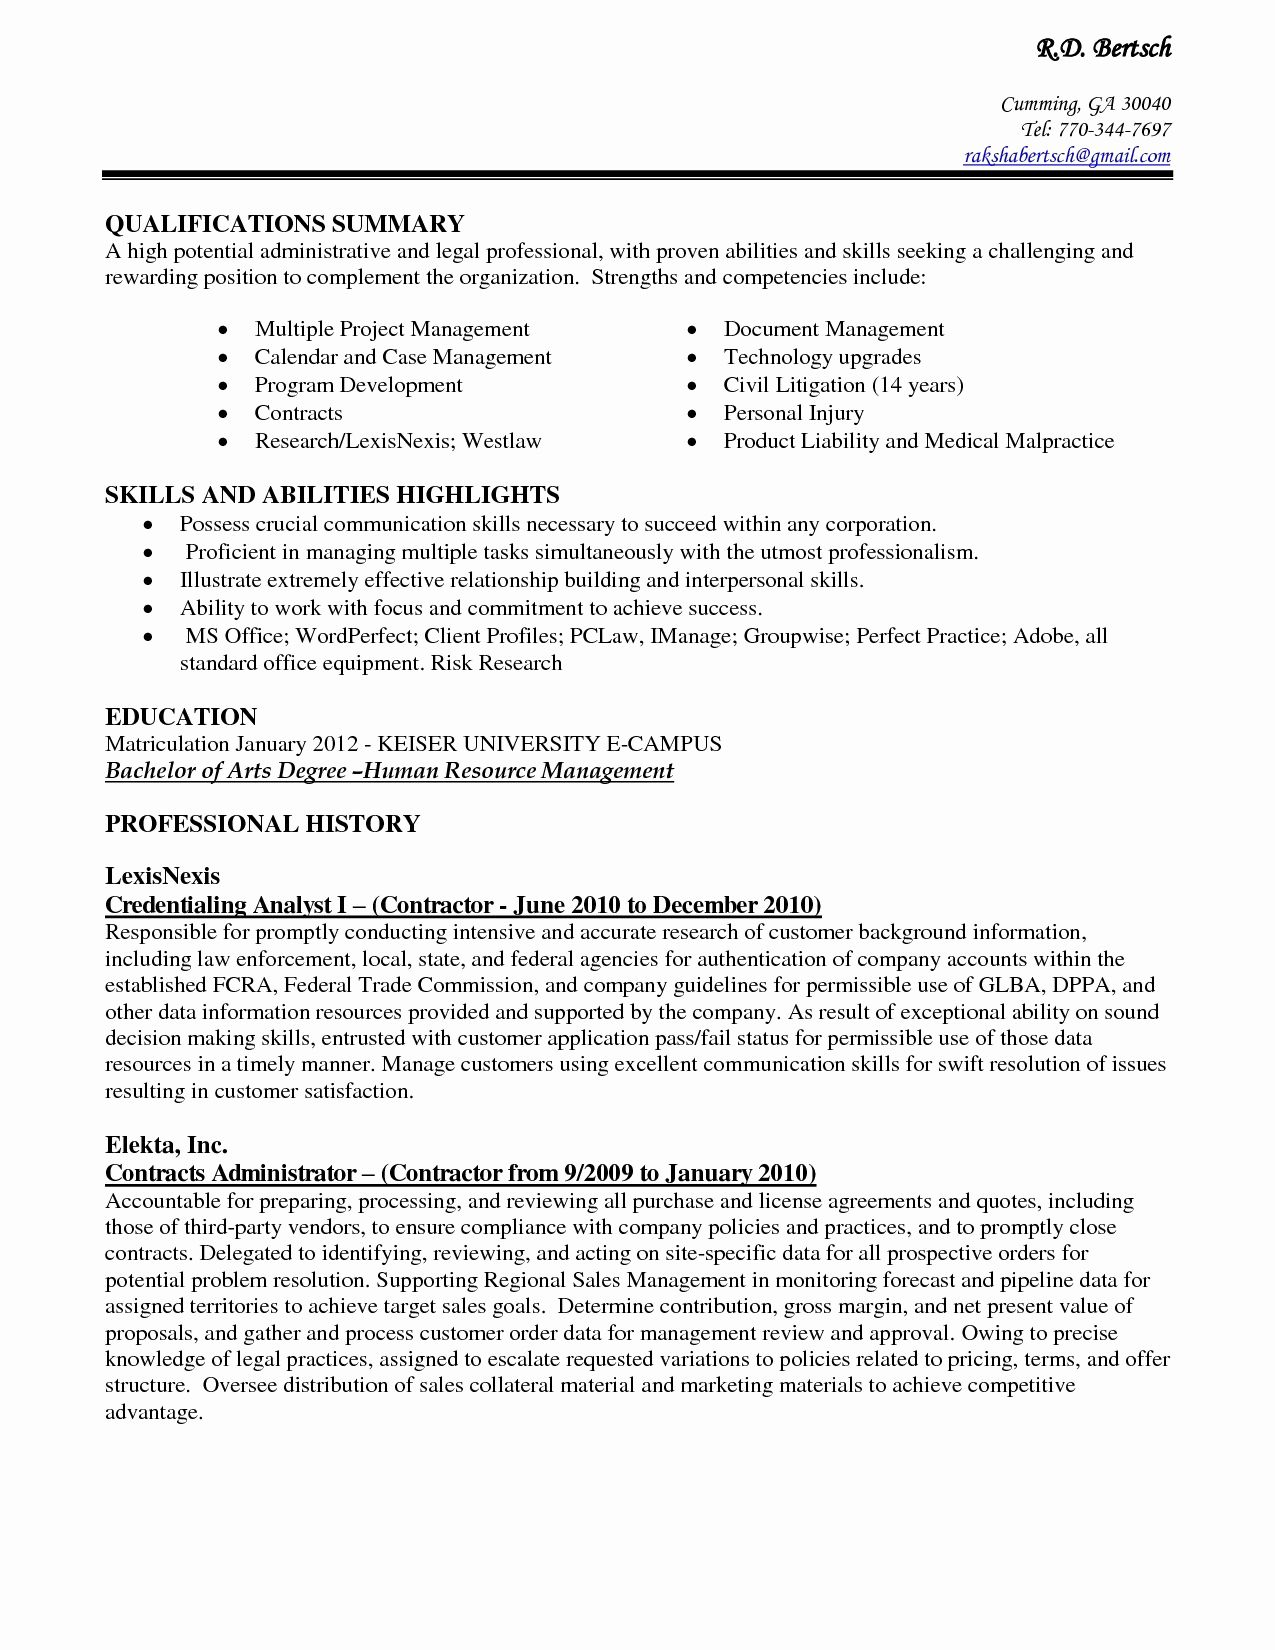 administrative assistant resume summary unique for office examples skills jobs servicenow Resume Office Assistant Resume Summary